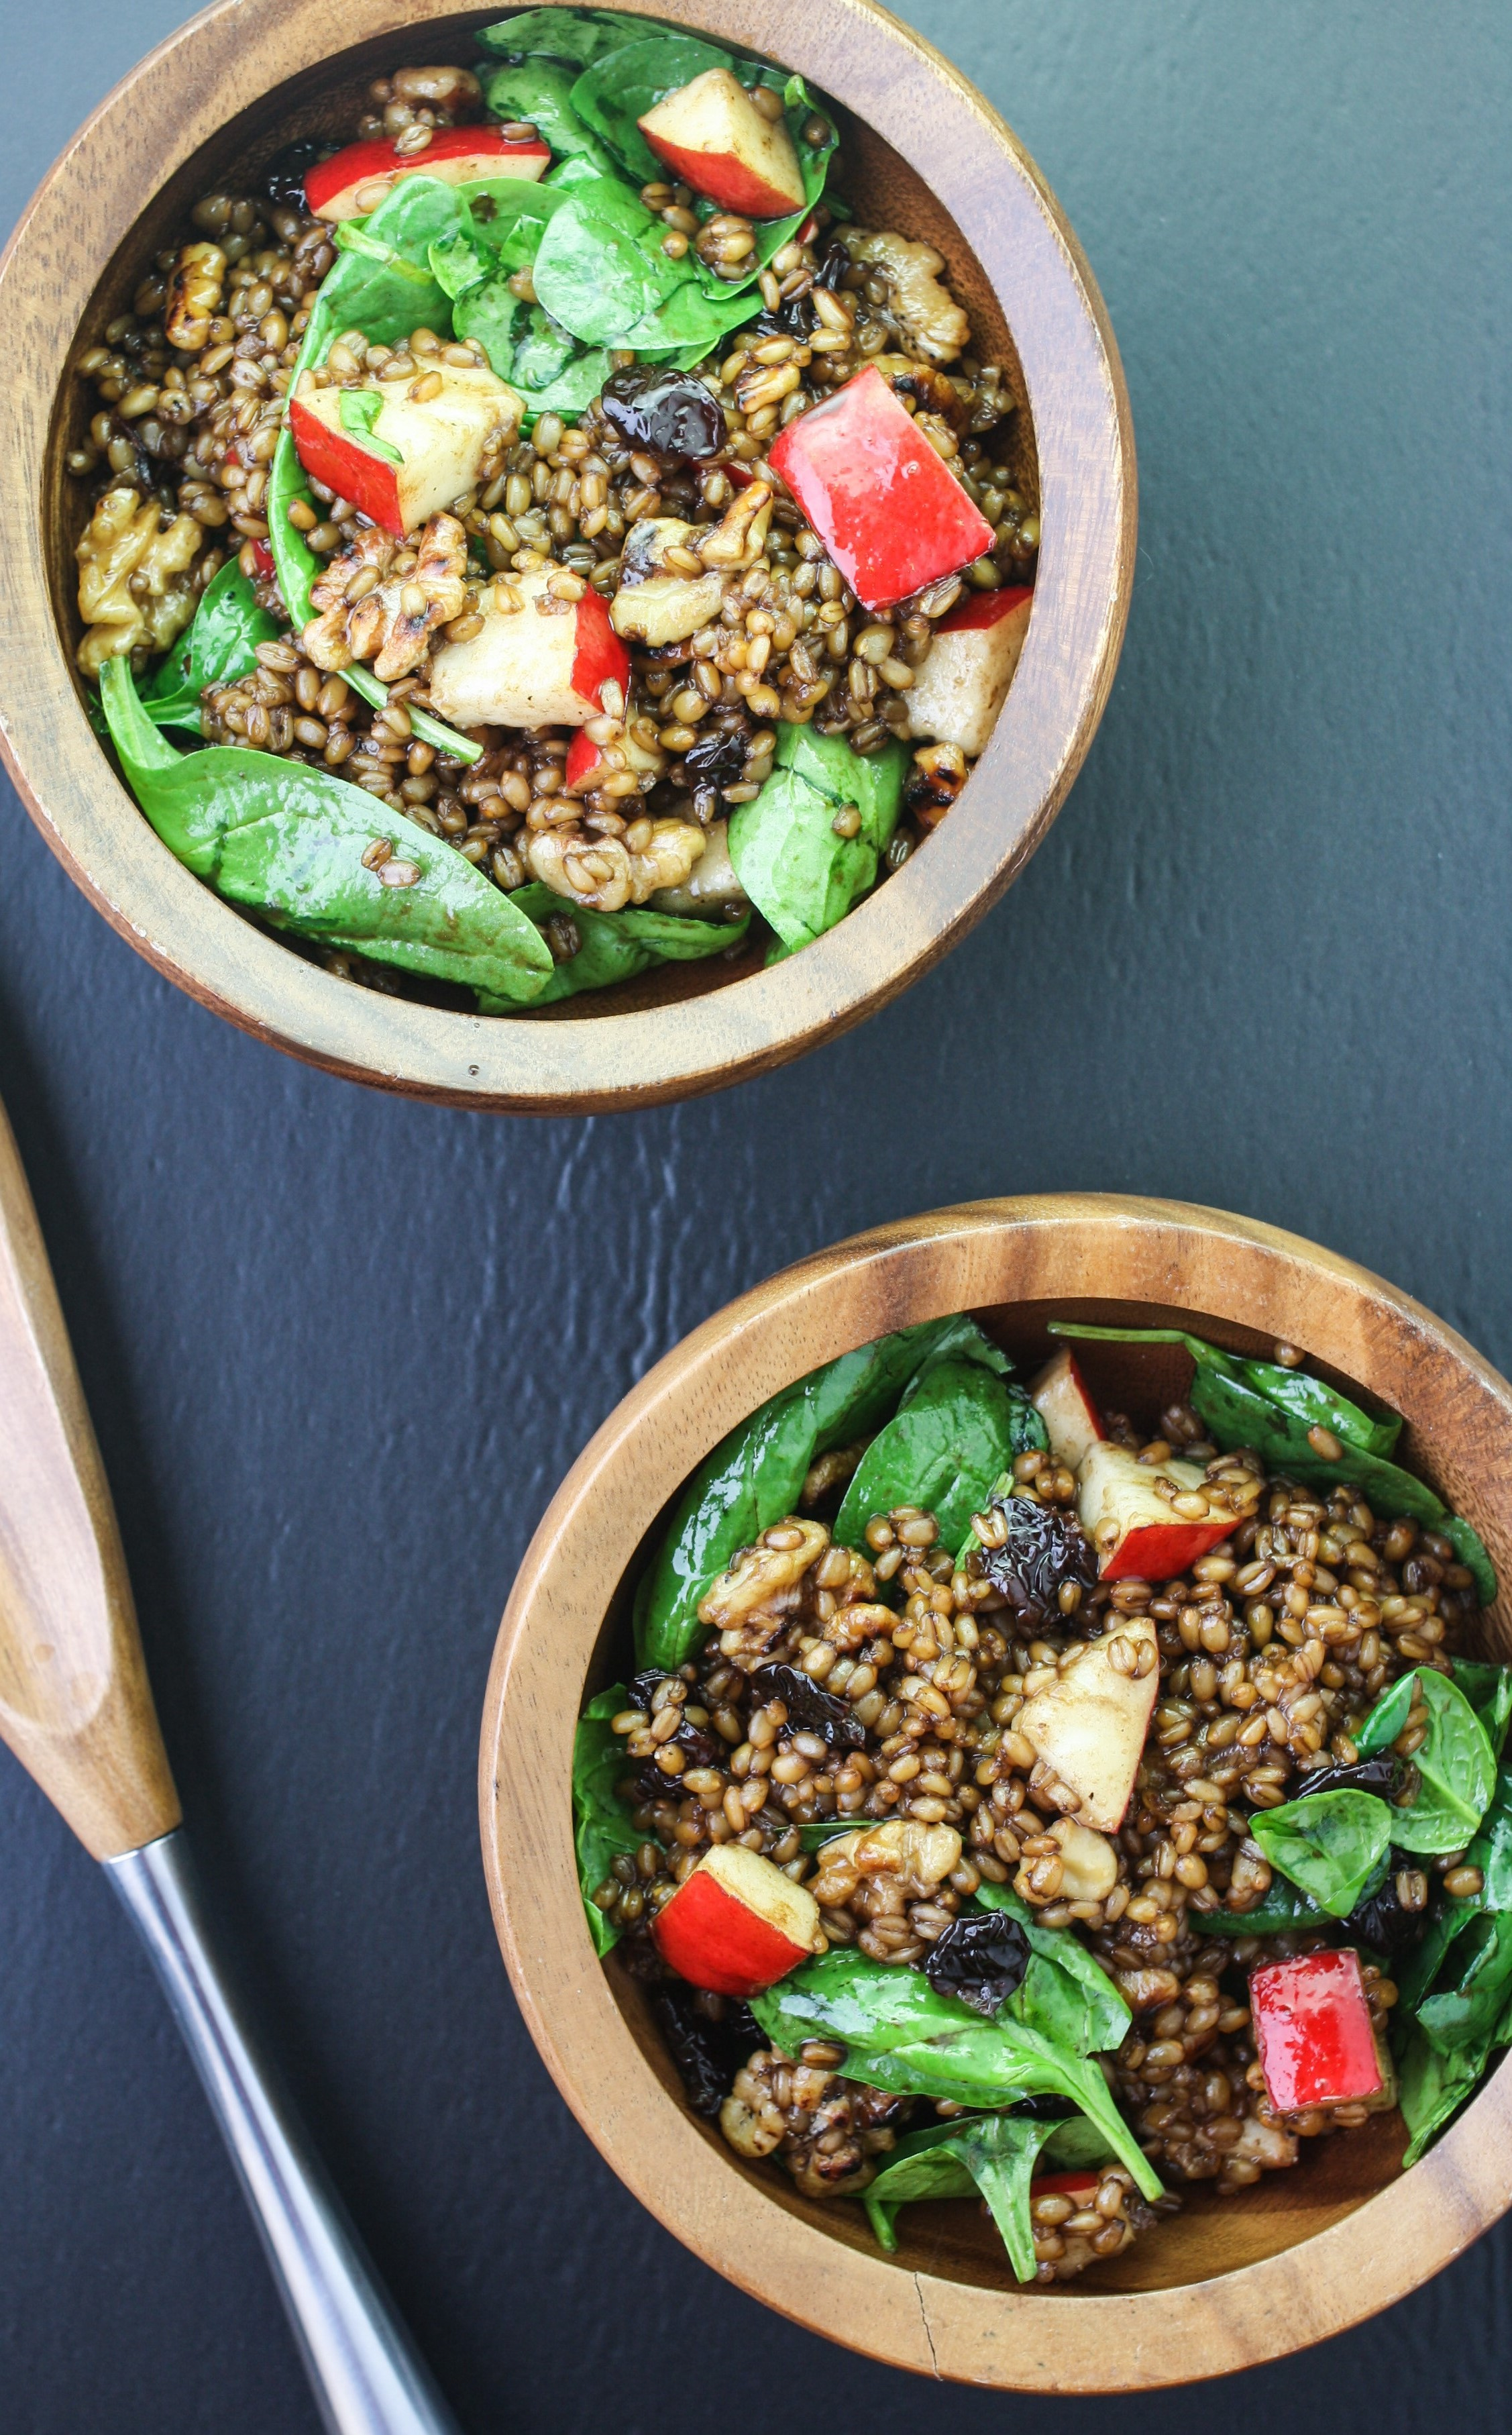 Pear and Walnut Wheatberry Bowl